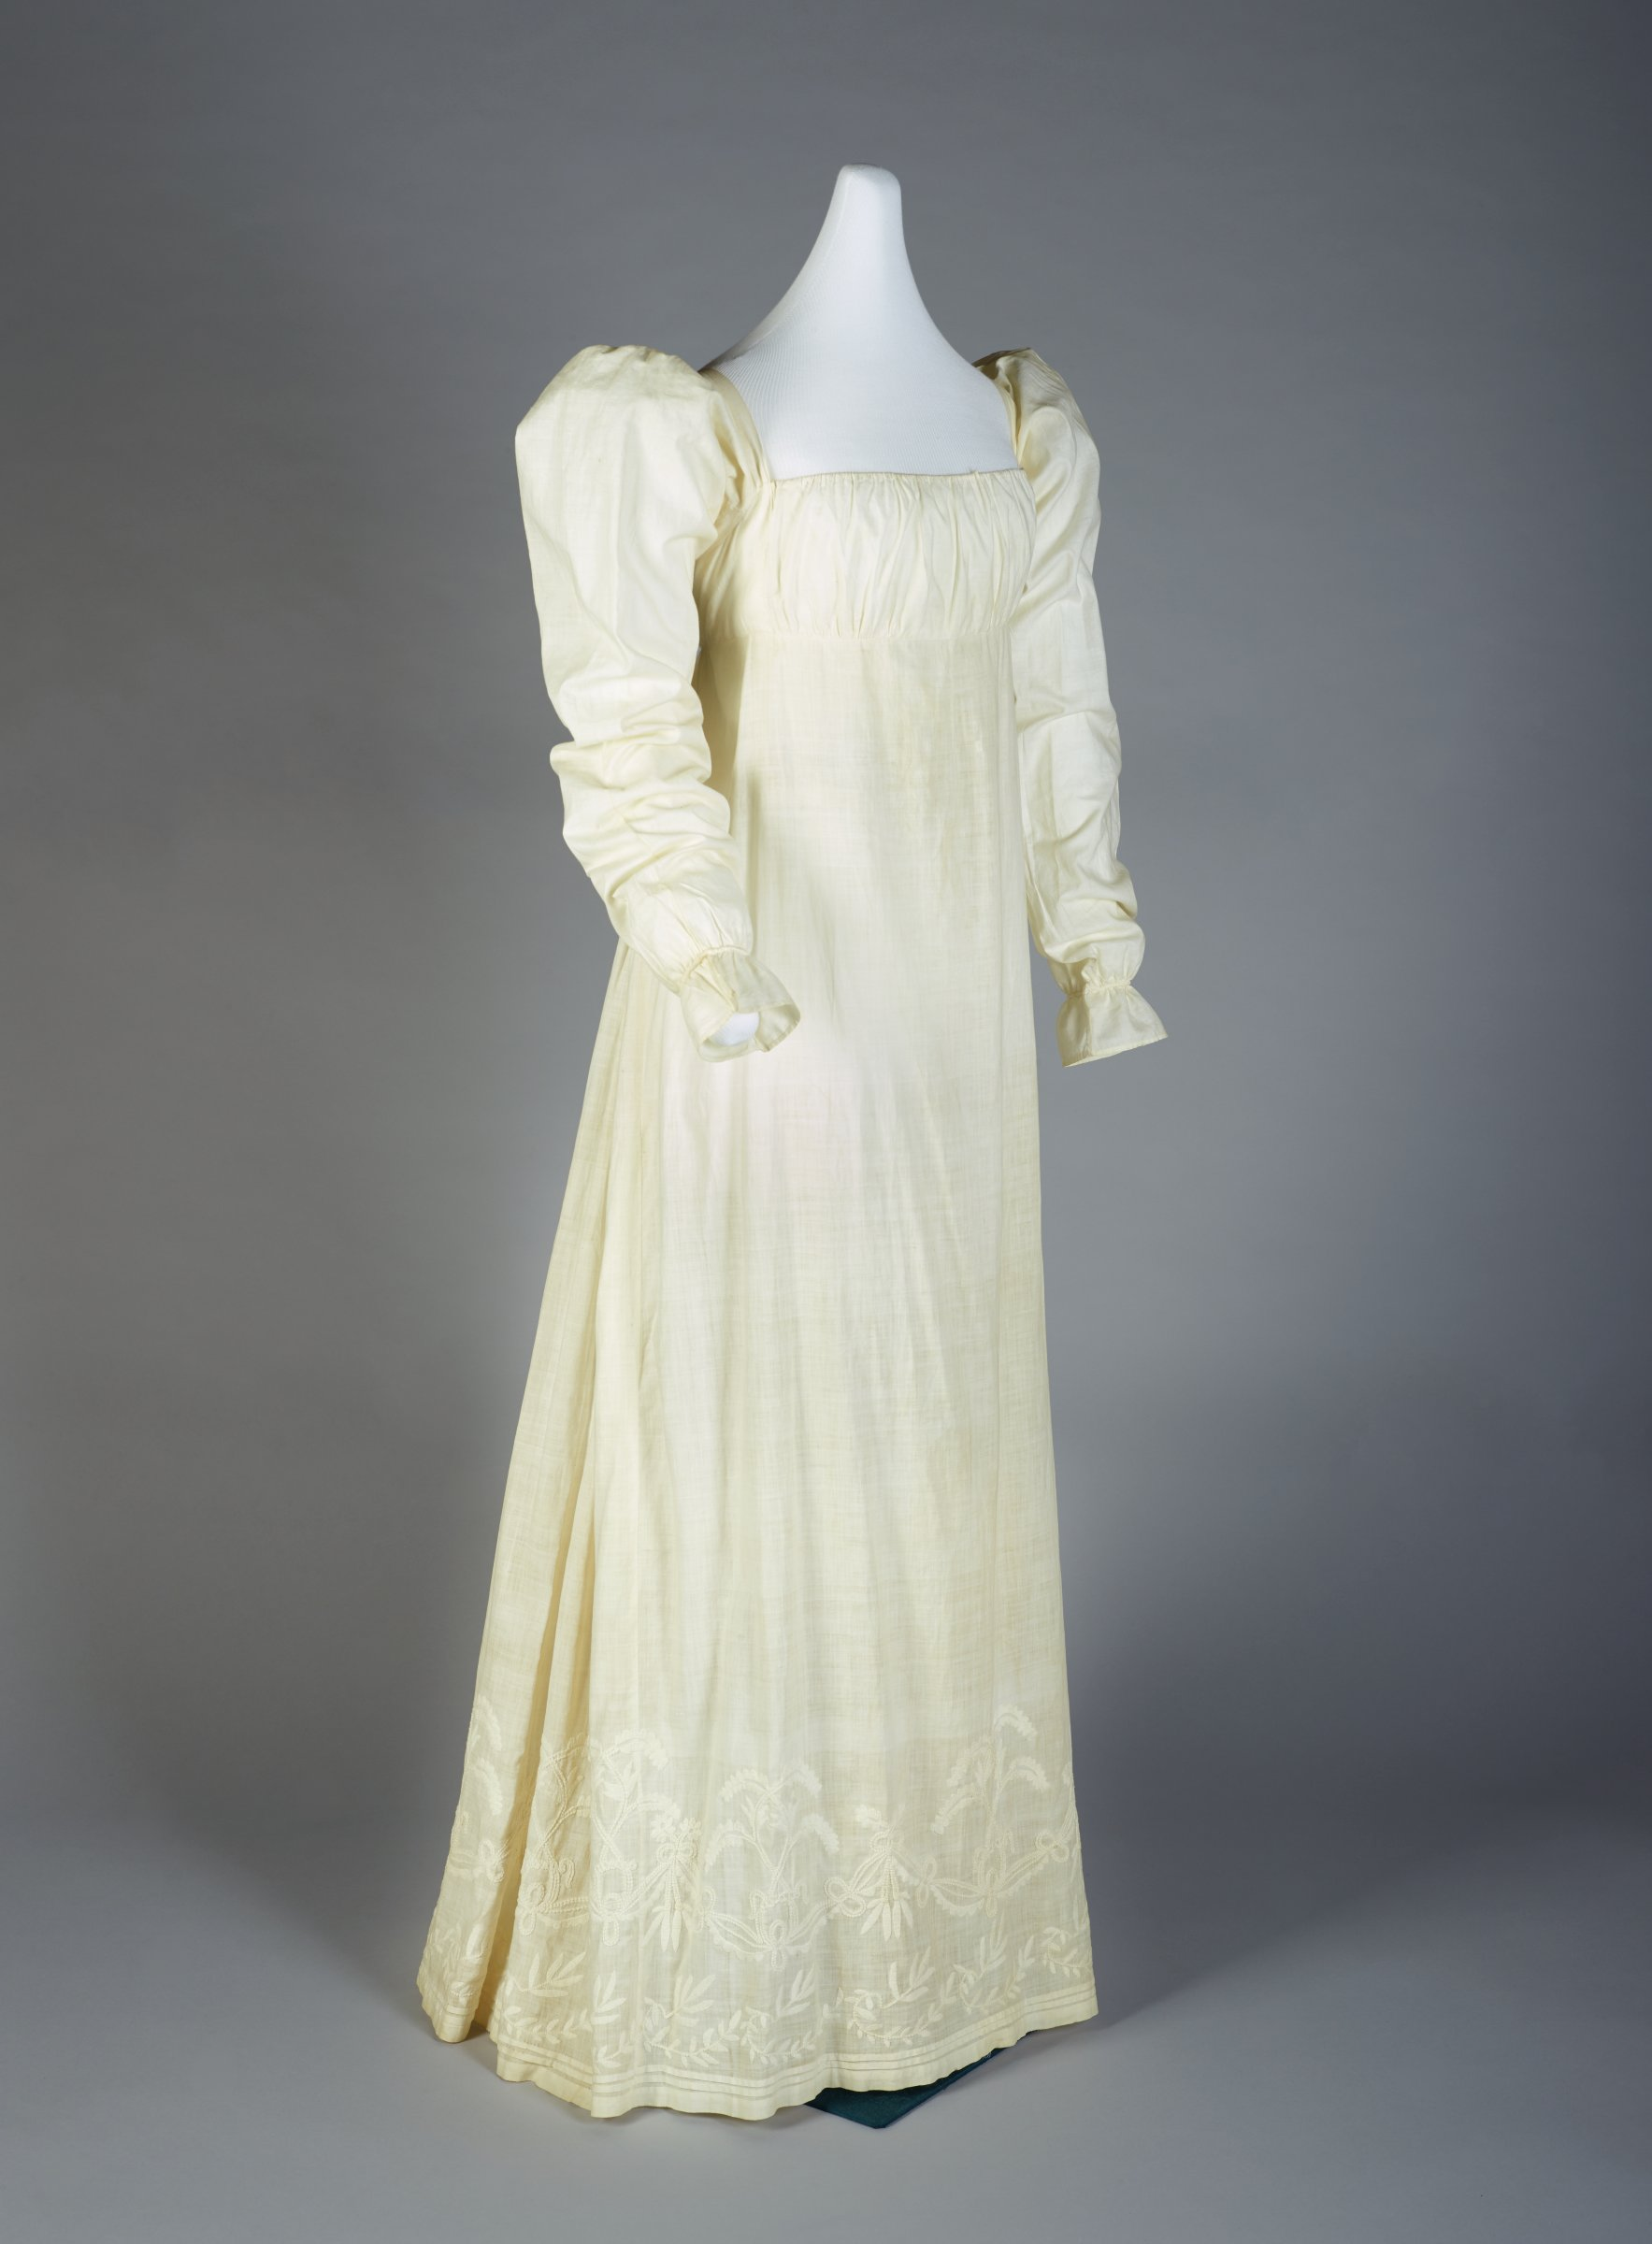 Simple white cotton muslin chemise dress with long sleeves, gathered neck and Empire waist with drawstring gathers and sash, with decorative floral embroidery in white consisting of vines and bows, in long and short stitch at hem, slightly trained.